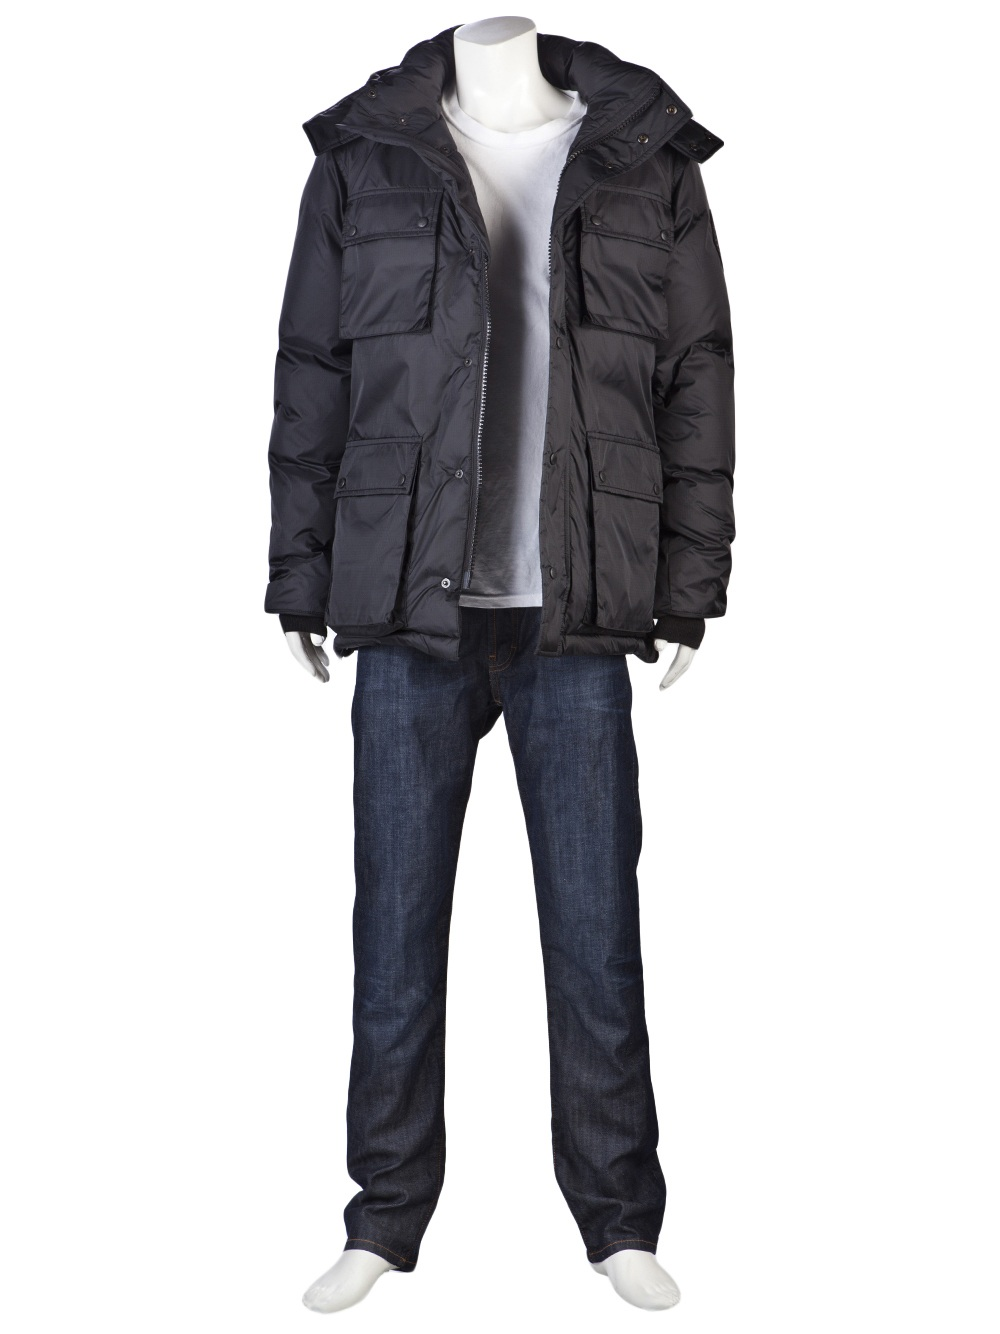 Canada Goose Manitoba Jacket In Gray For Men Graphite Lyst